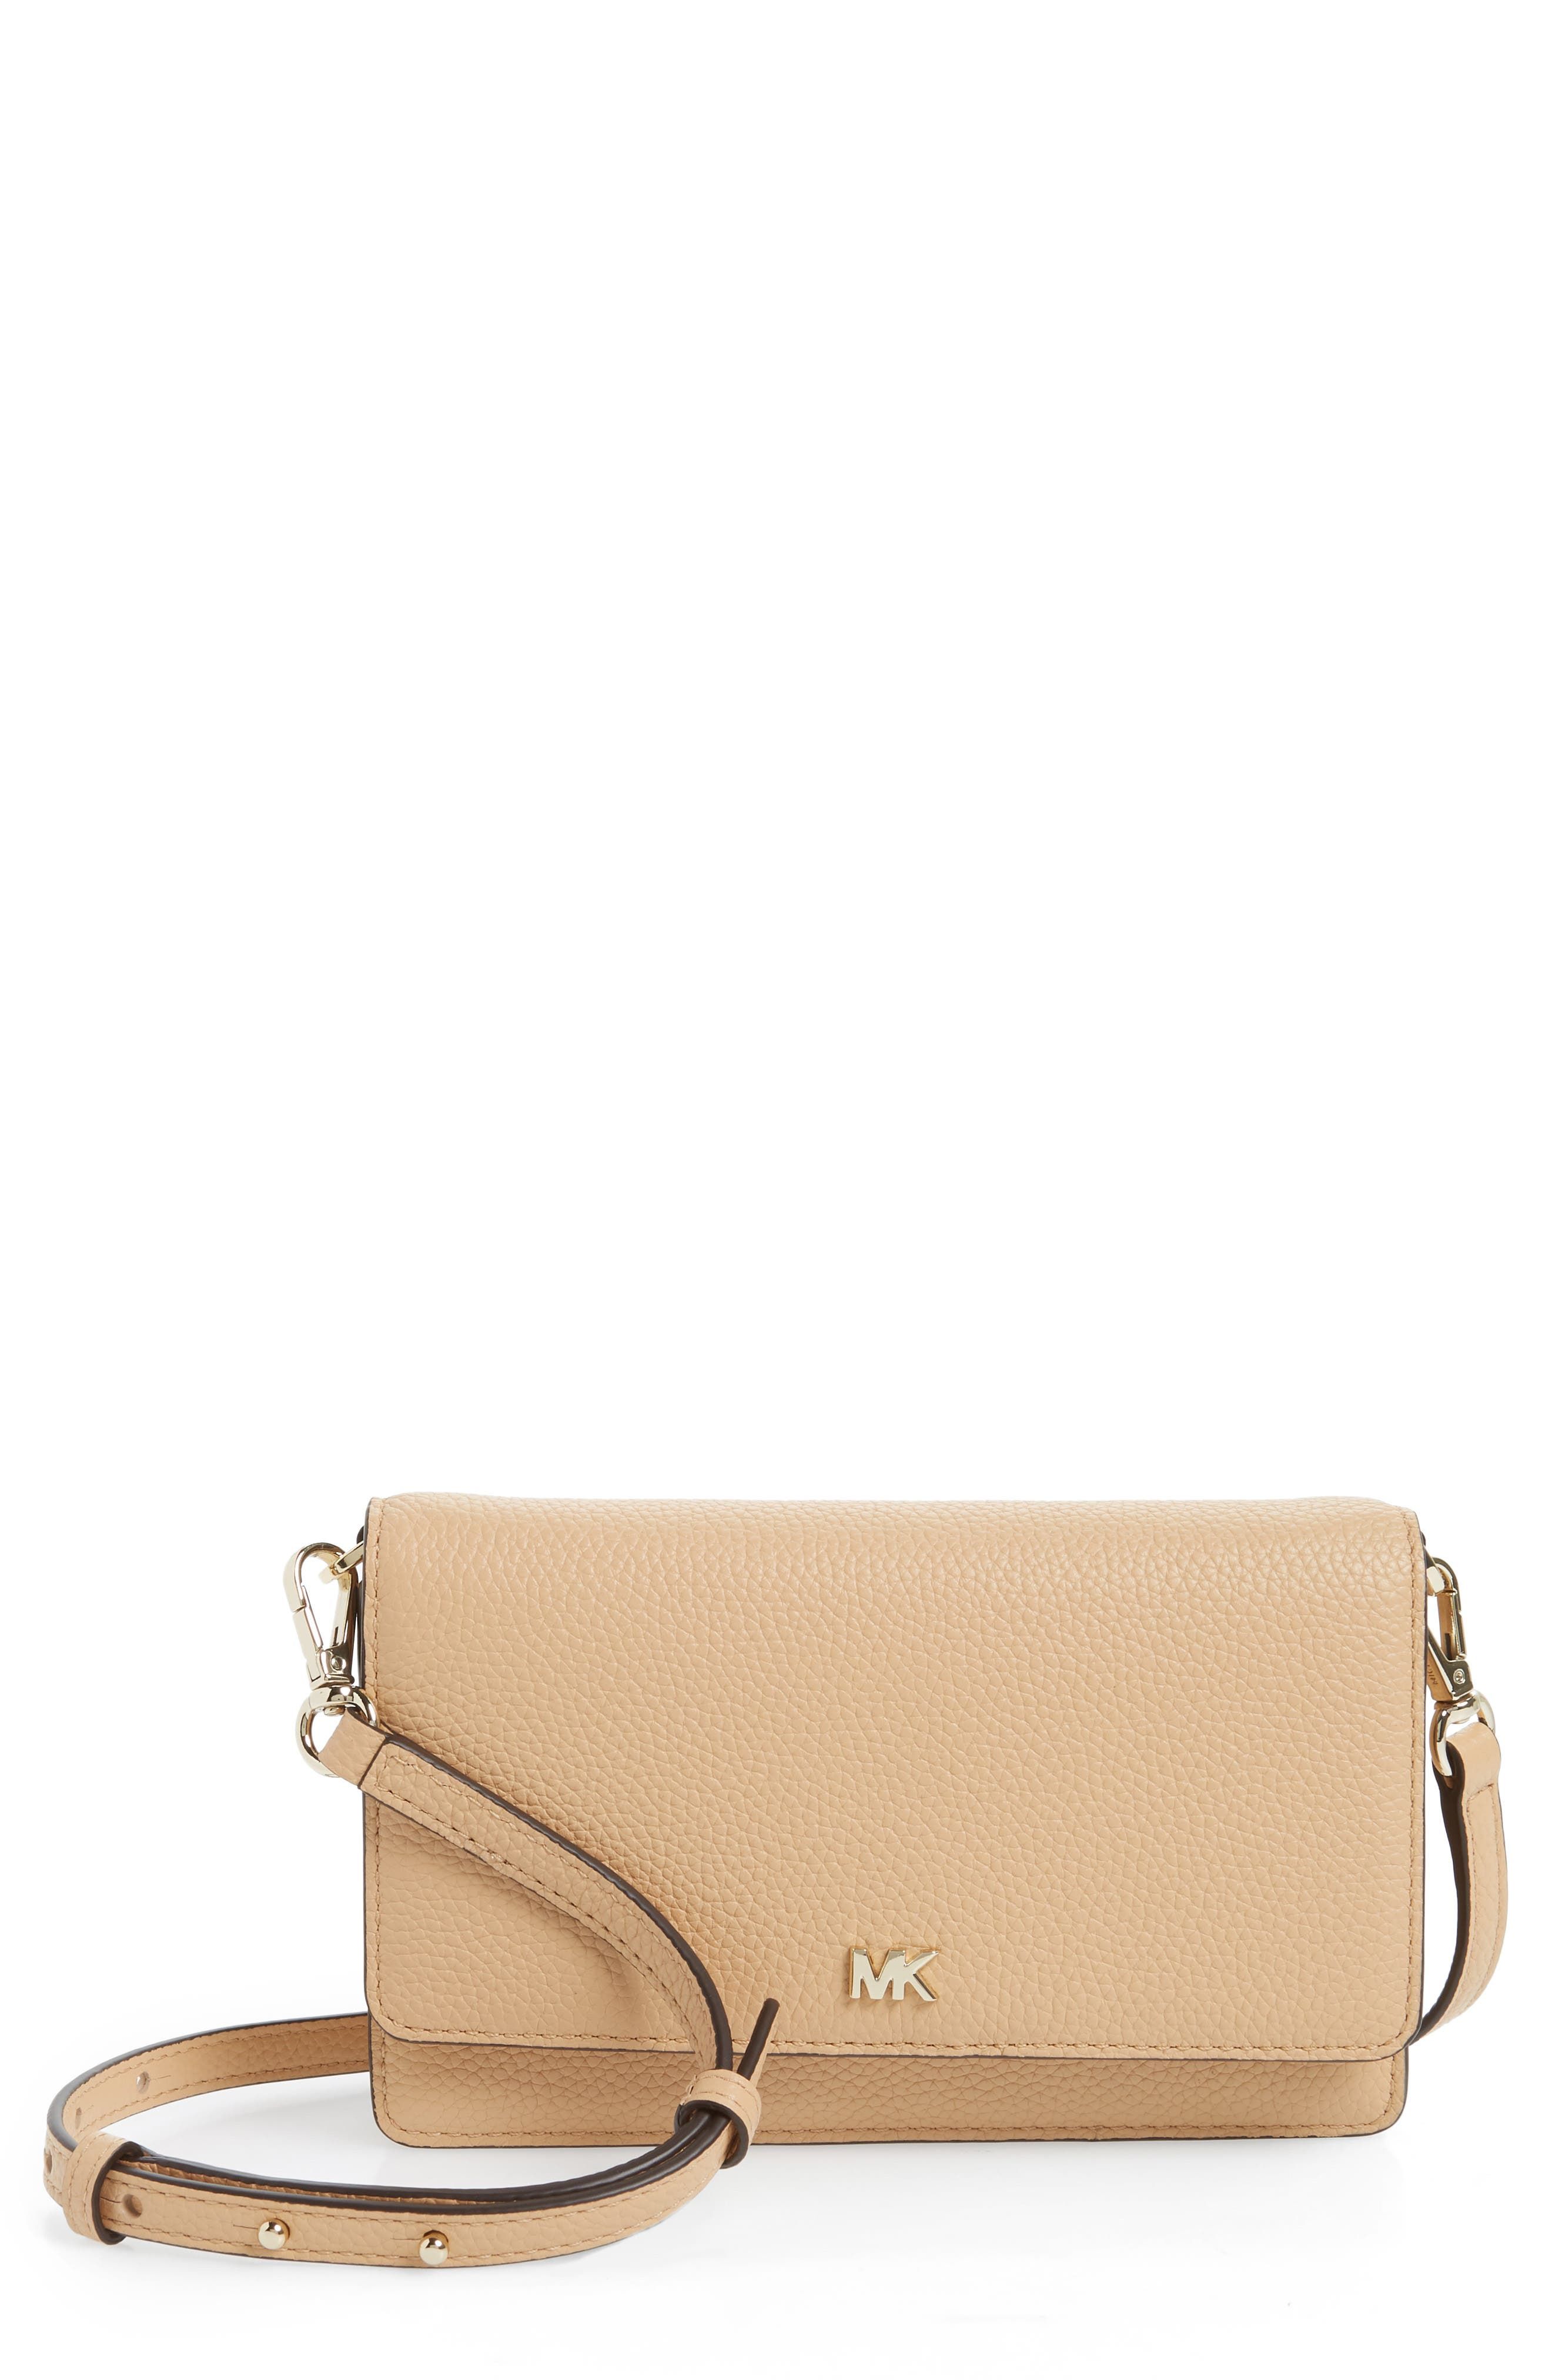 Leather Crossbody Phone Wallet,                             Main thumbnail 1, color,                             Butternut